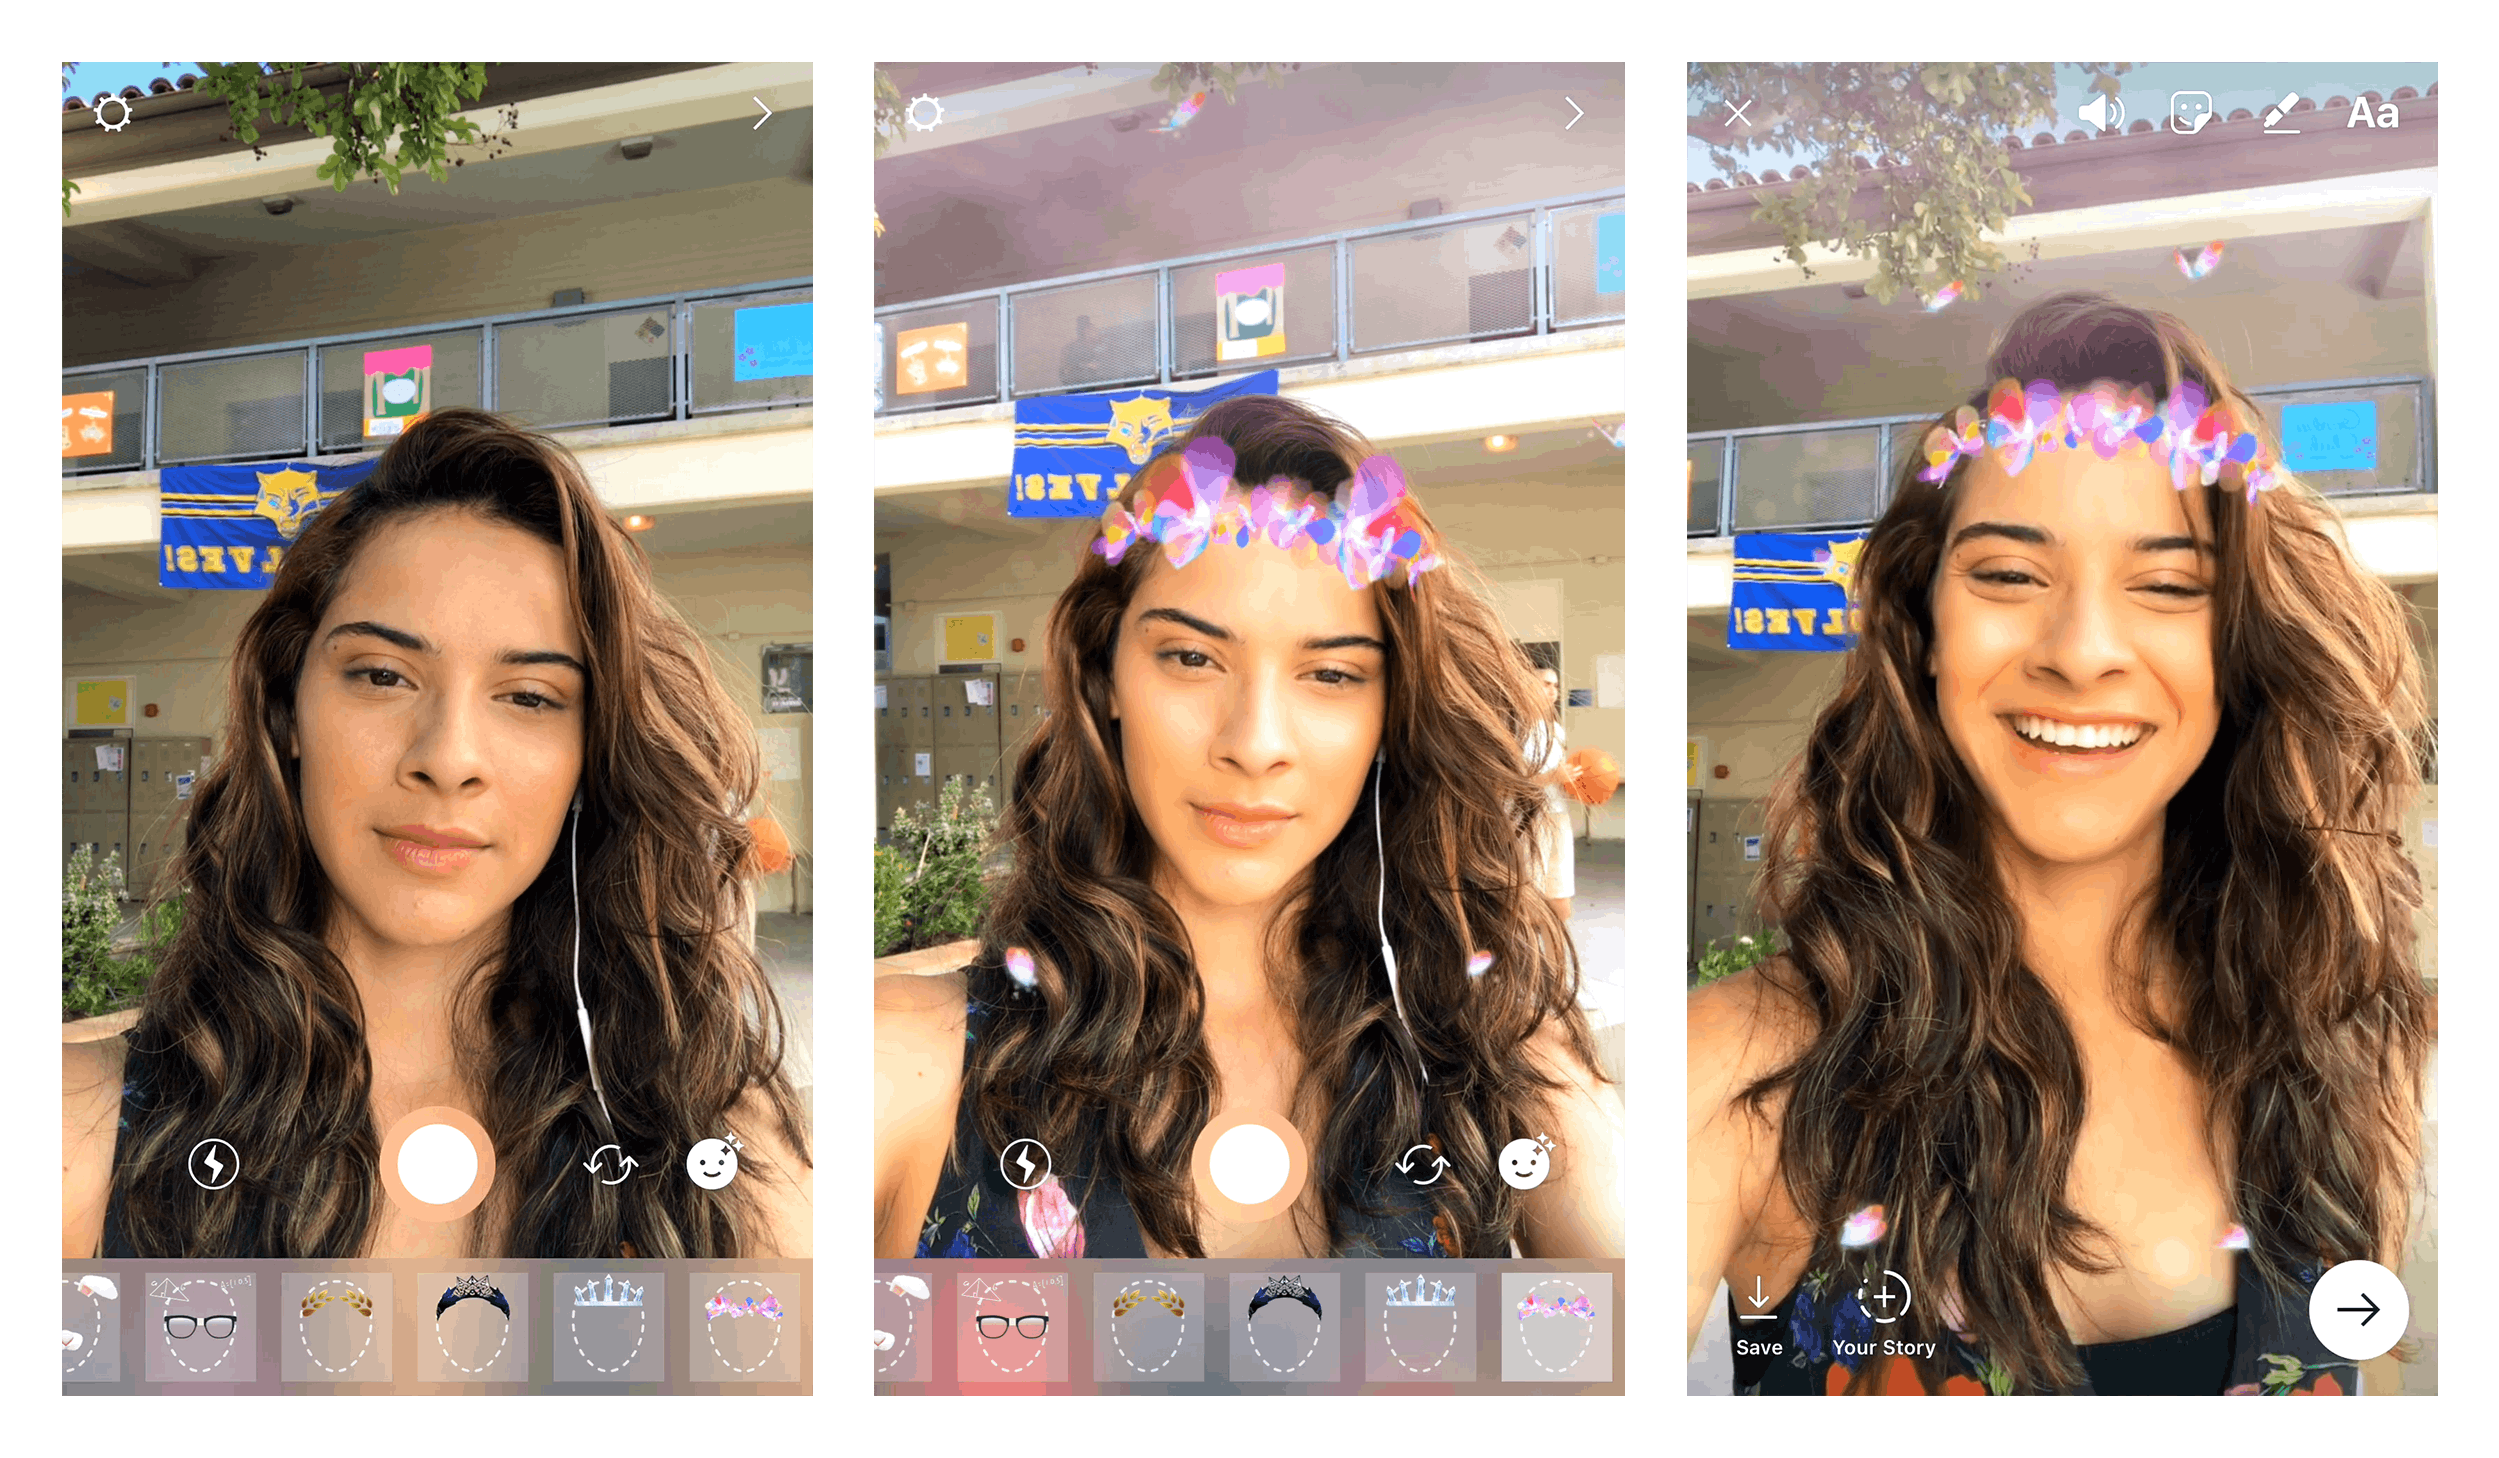 Instagram rips off Snapchat, again -- this time with face filters